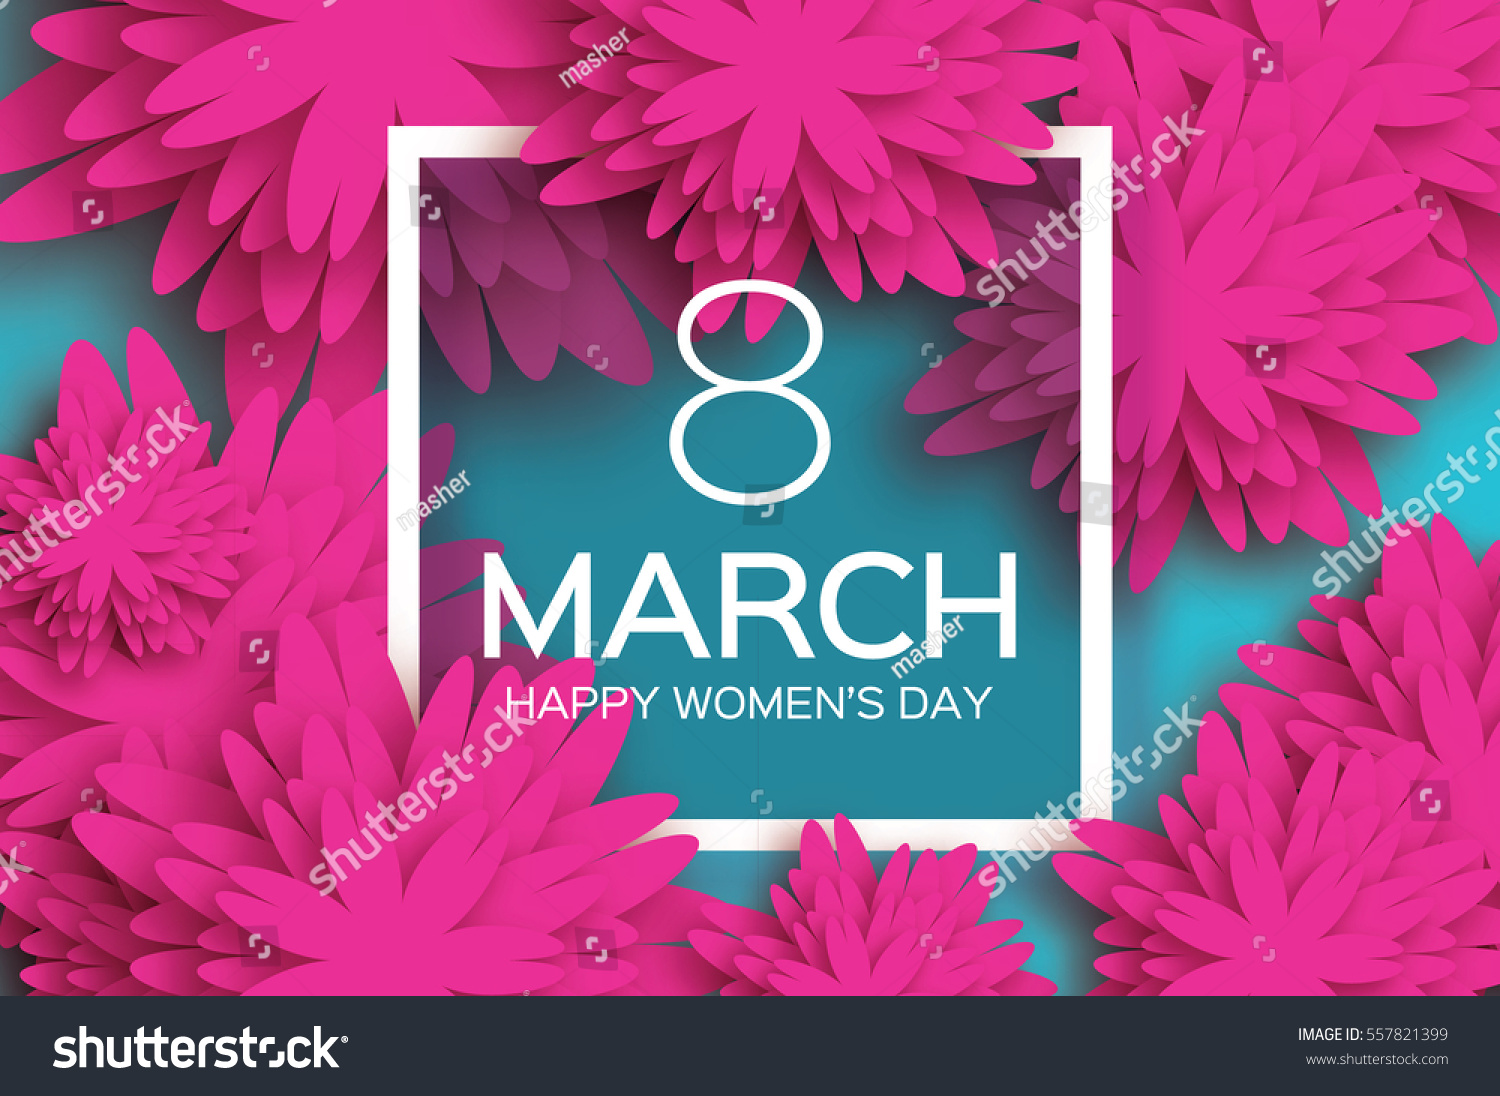 8 March. pink Floral Greeting card. International Happy Women's Day. Paper cut flower blue holiday background with Square Frame and space for text. Trendy Design Template. Vector illustration #557821399